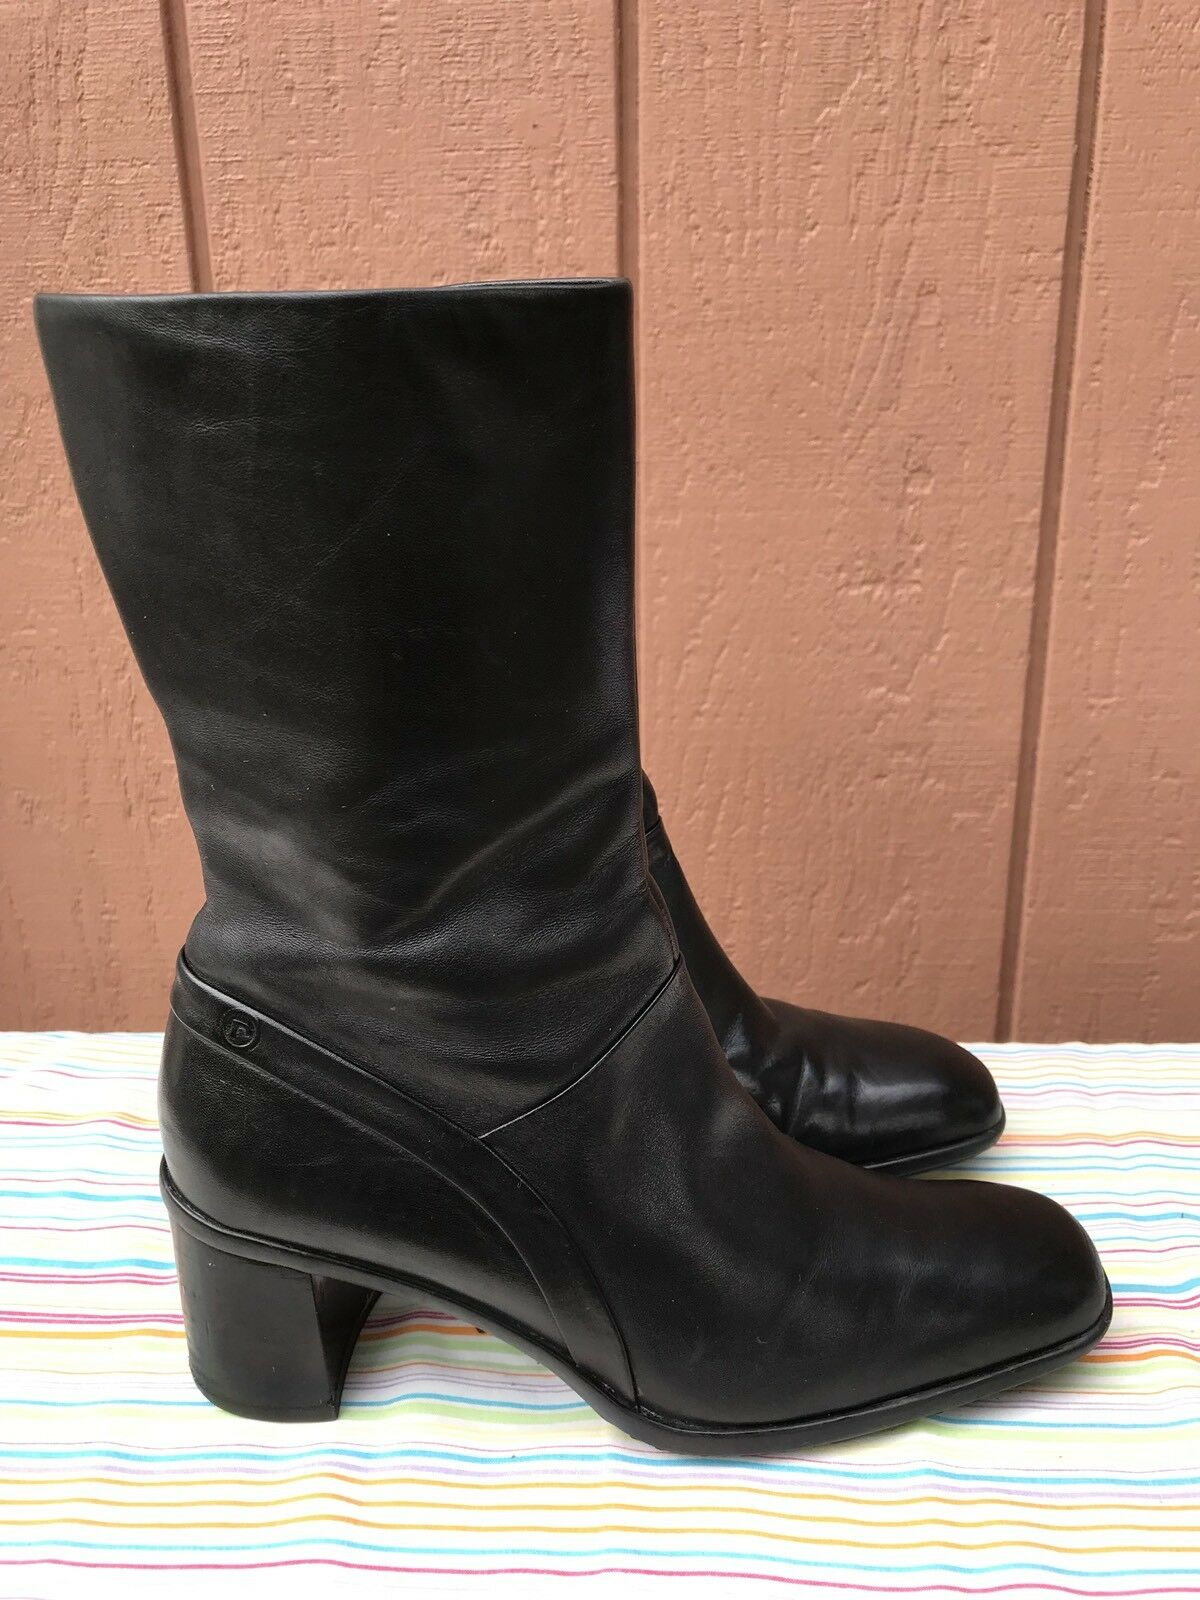 EUC Rockport Women's Black Leather Soft Leather Black Side Zip Boots Size US 6M APW 11031 3215bc